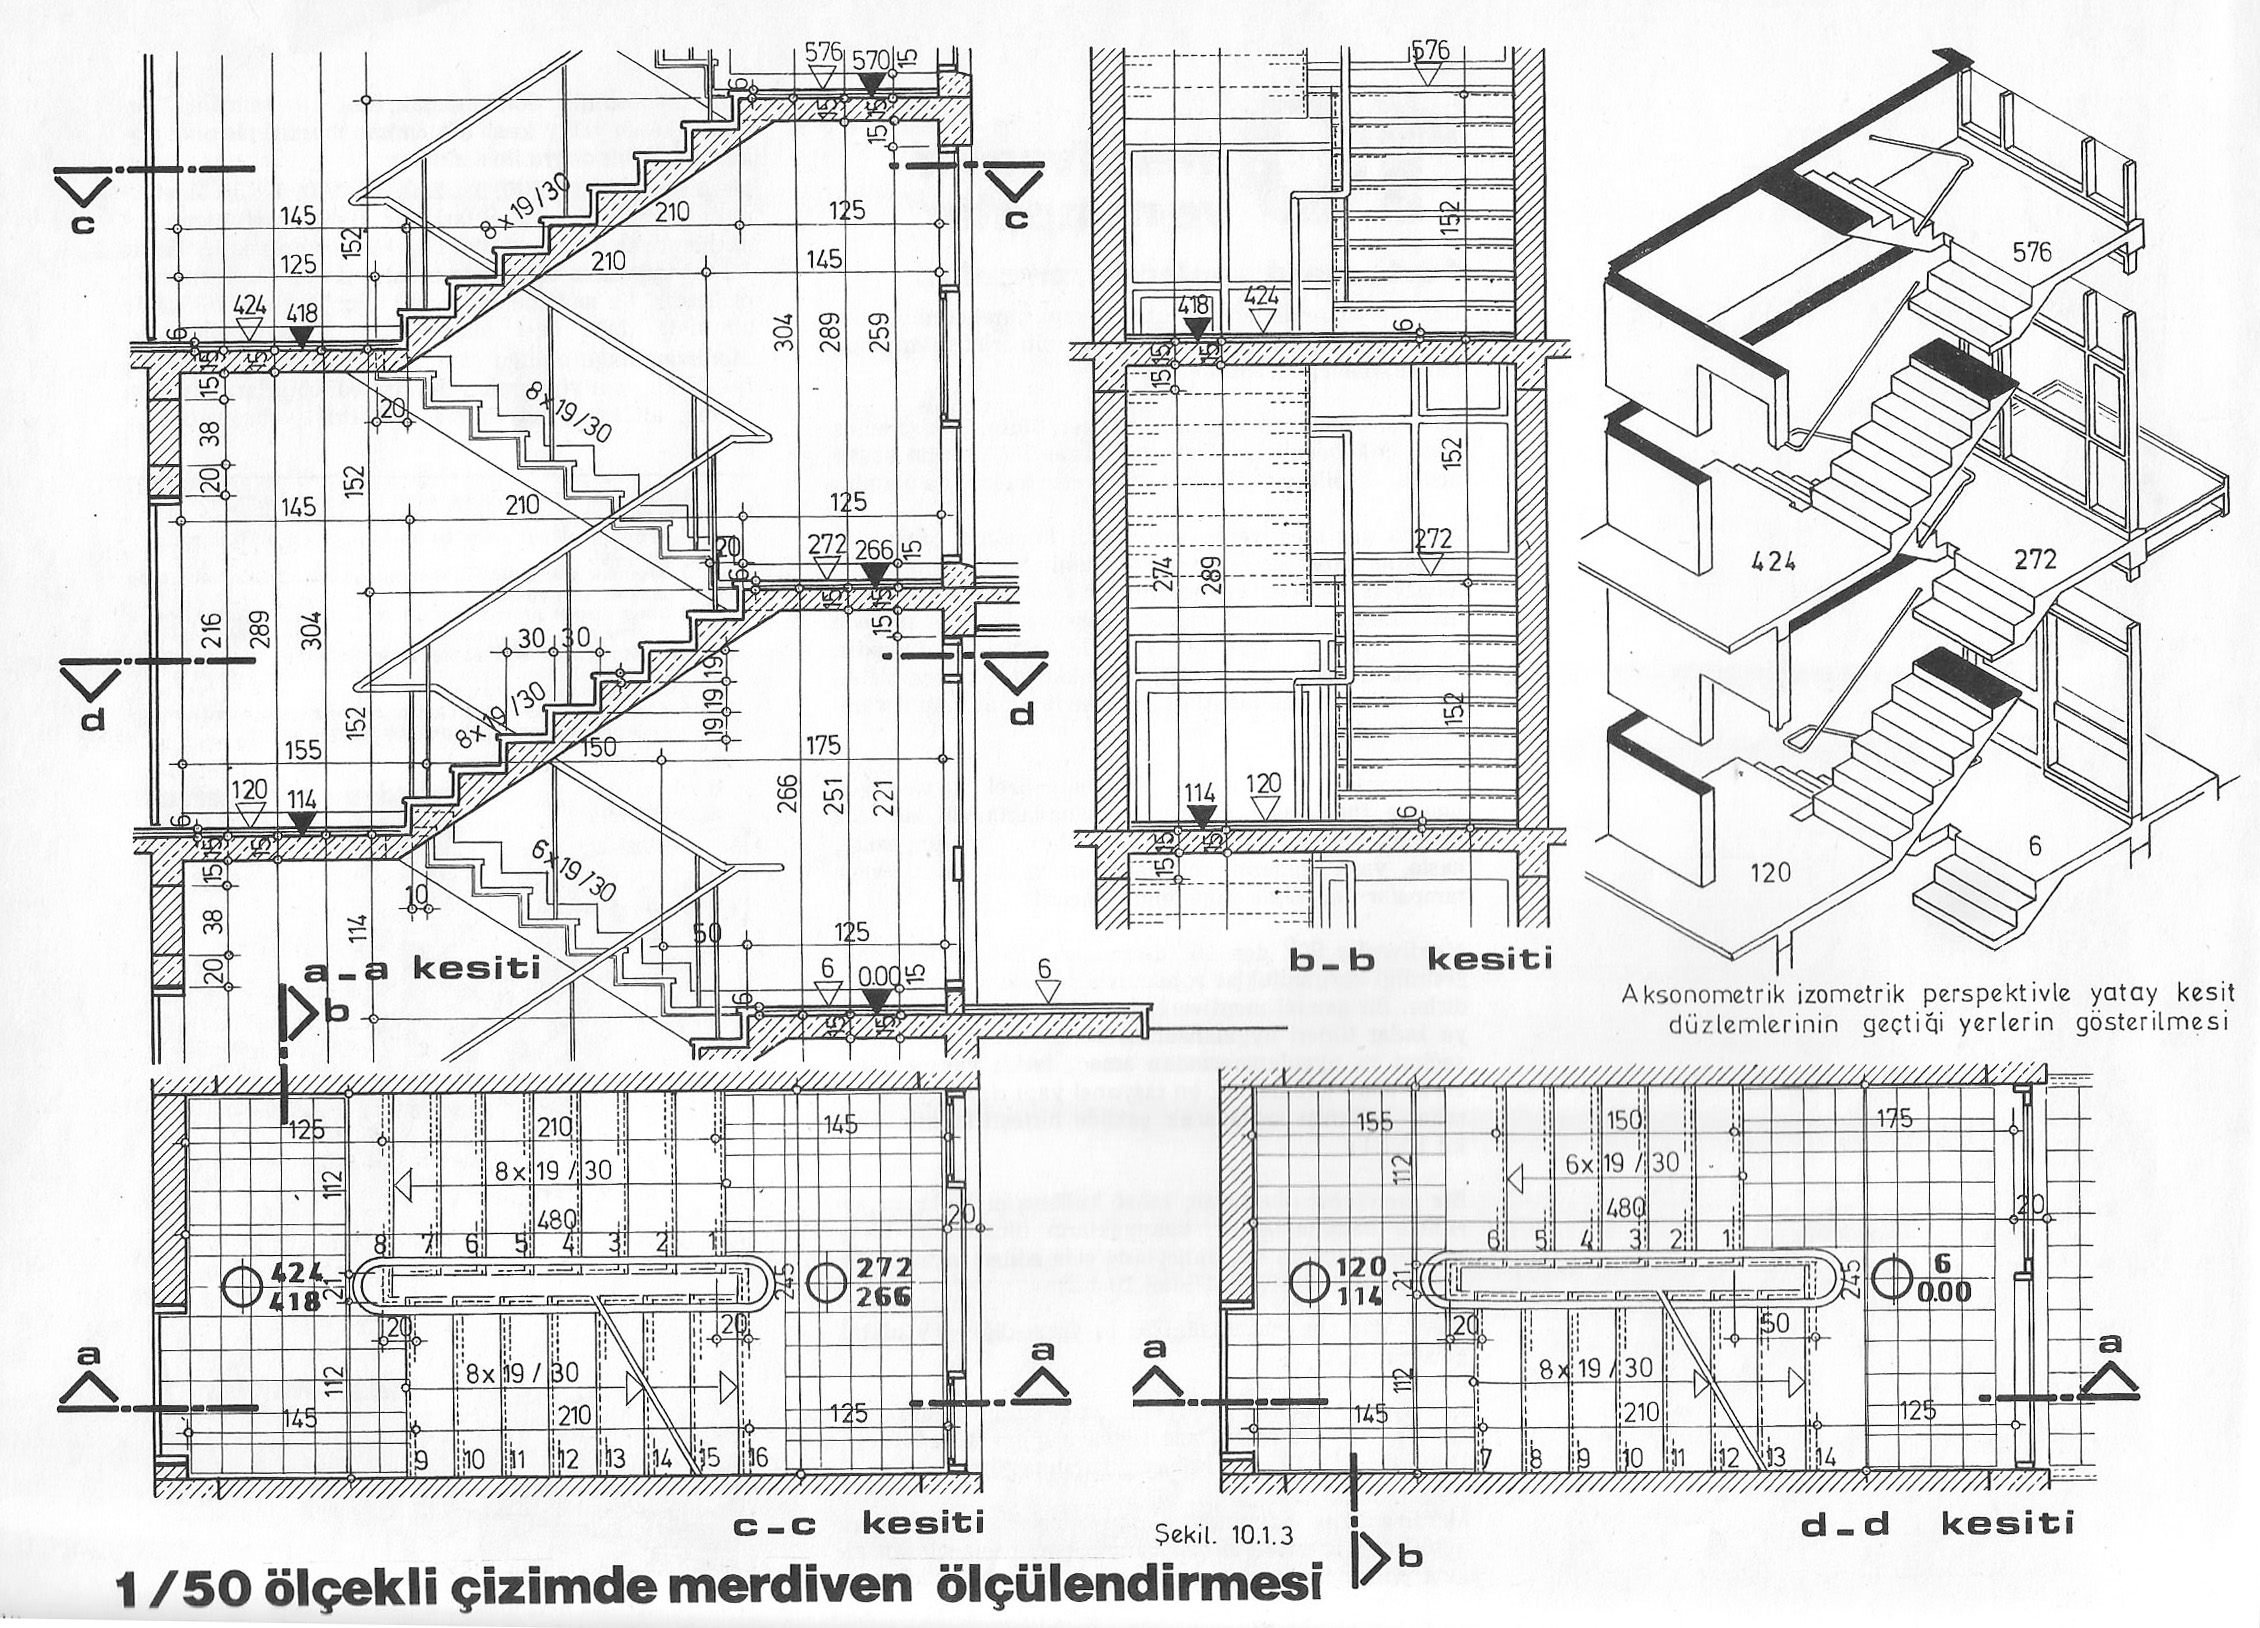 Architectural Drawing Scale lecture notes - architectural drawing course